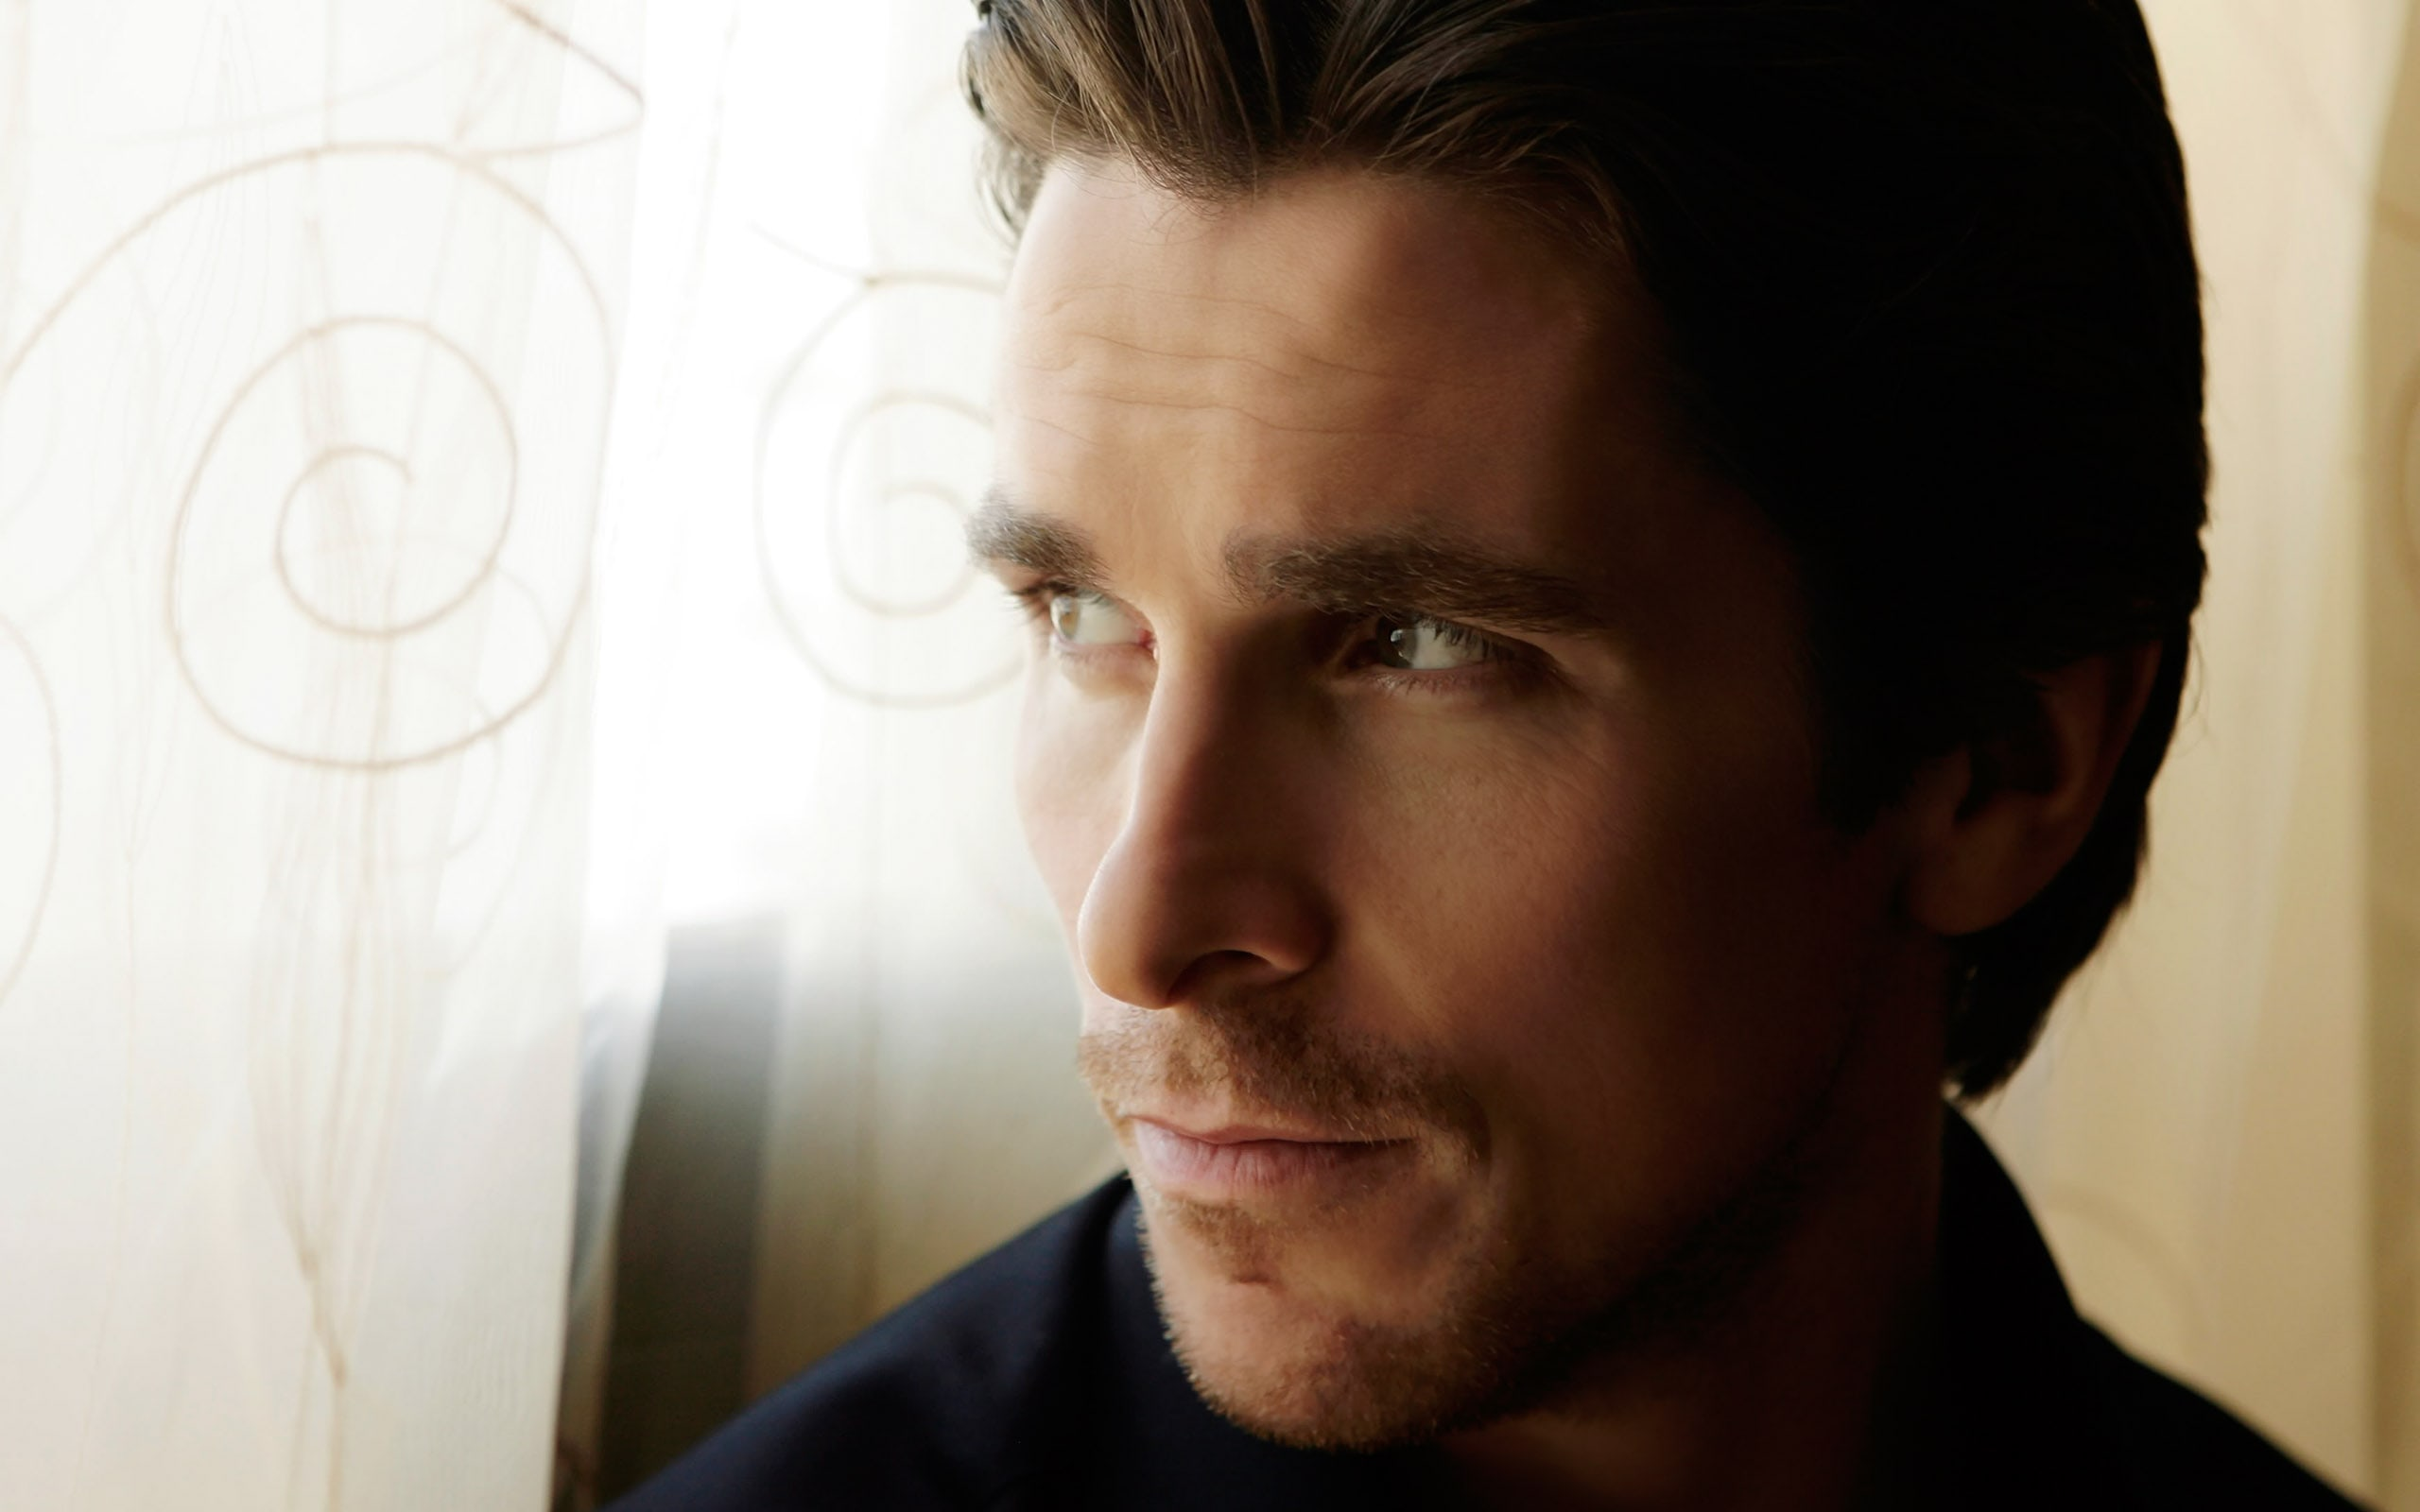 Christian Bale Widescreen for desktop